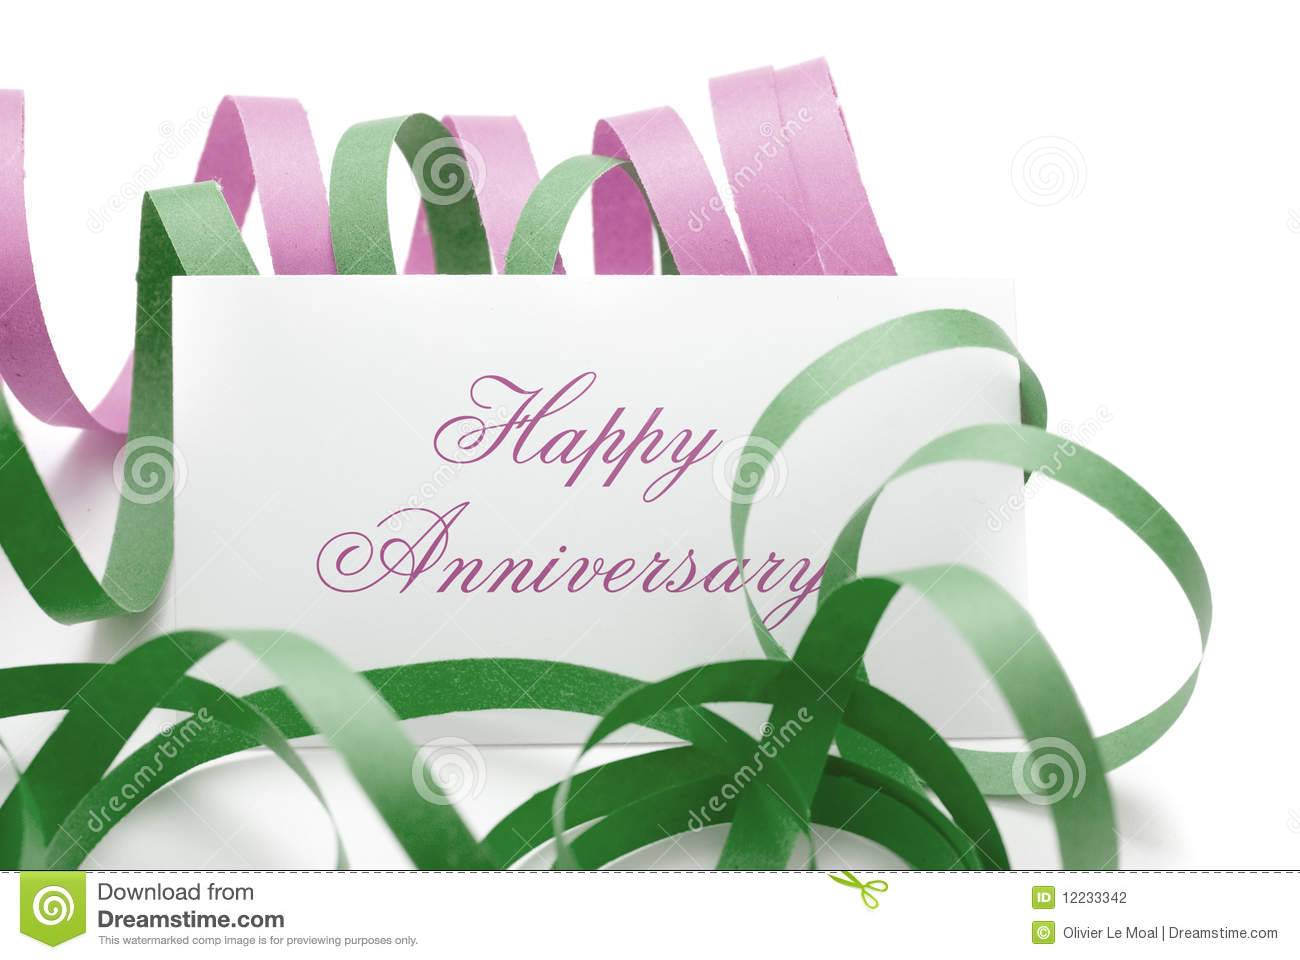 Happy anniversary message on a card